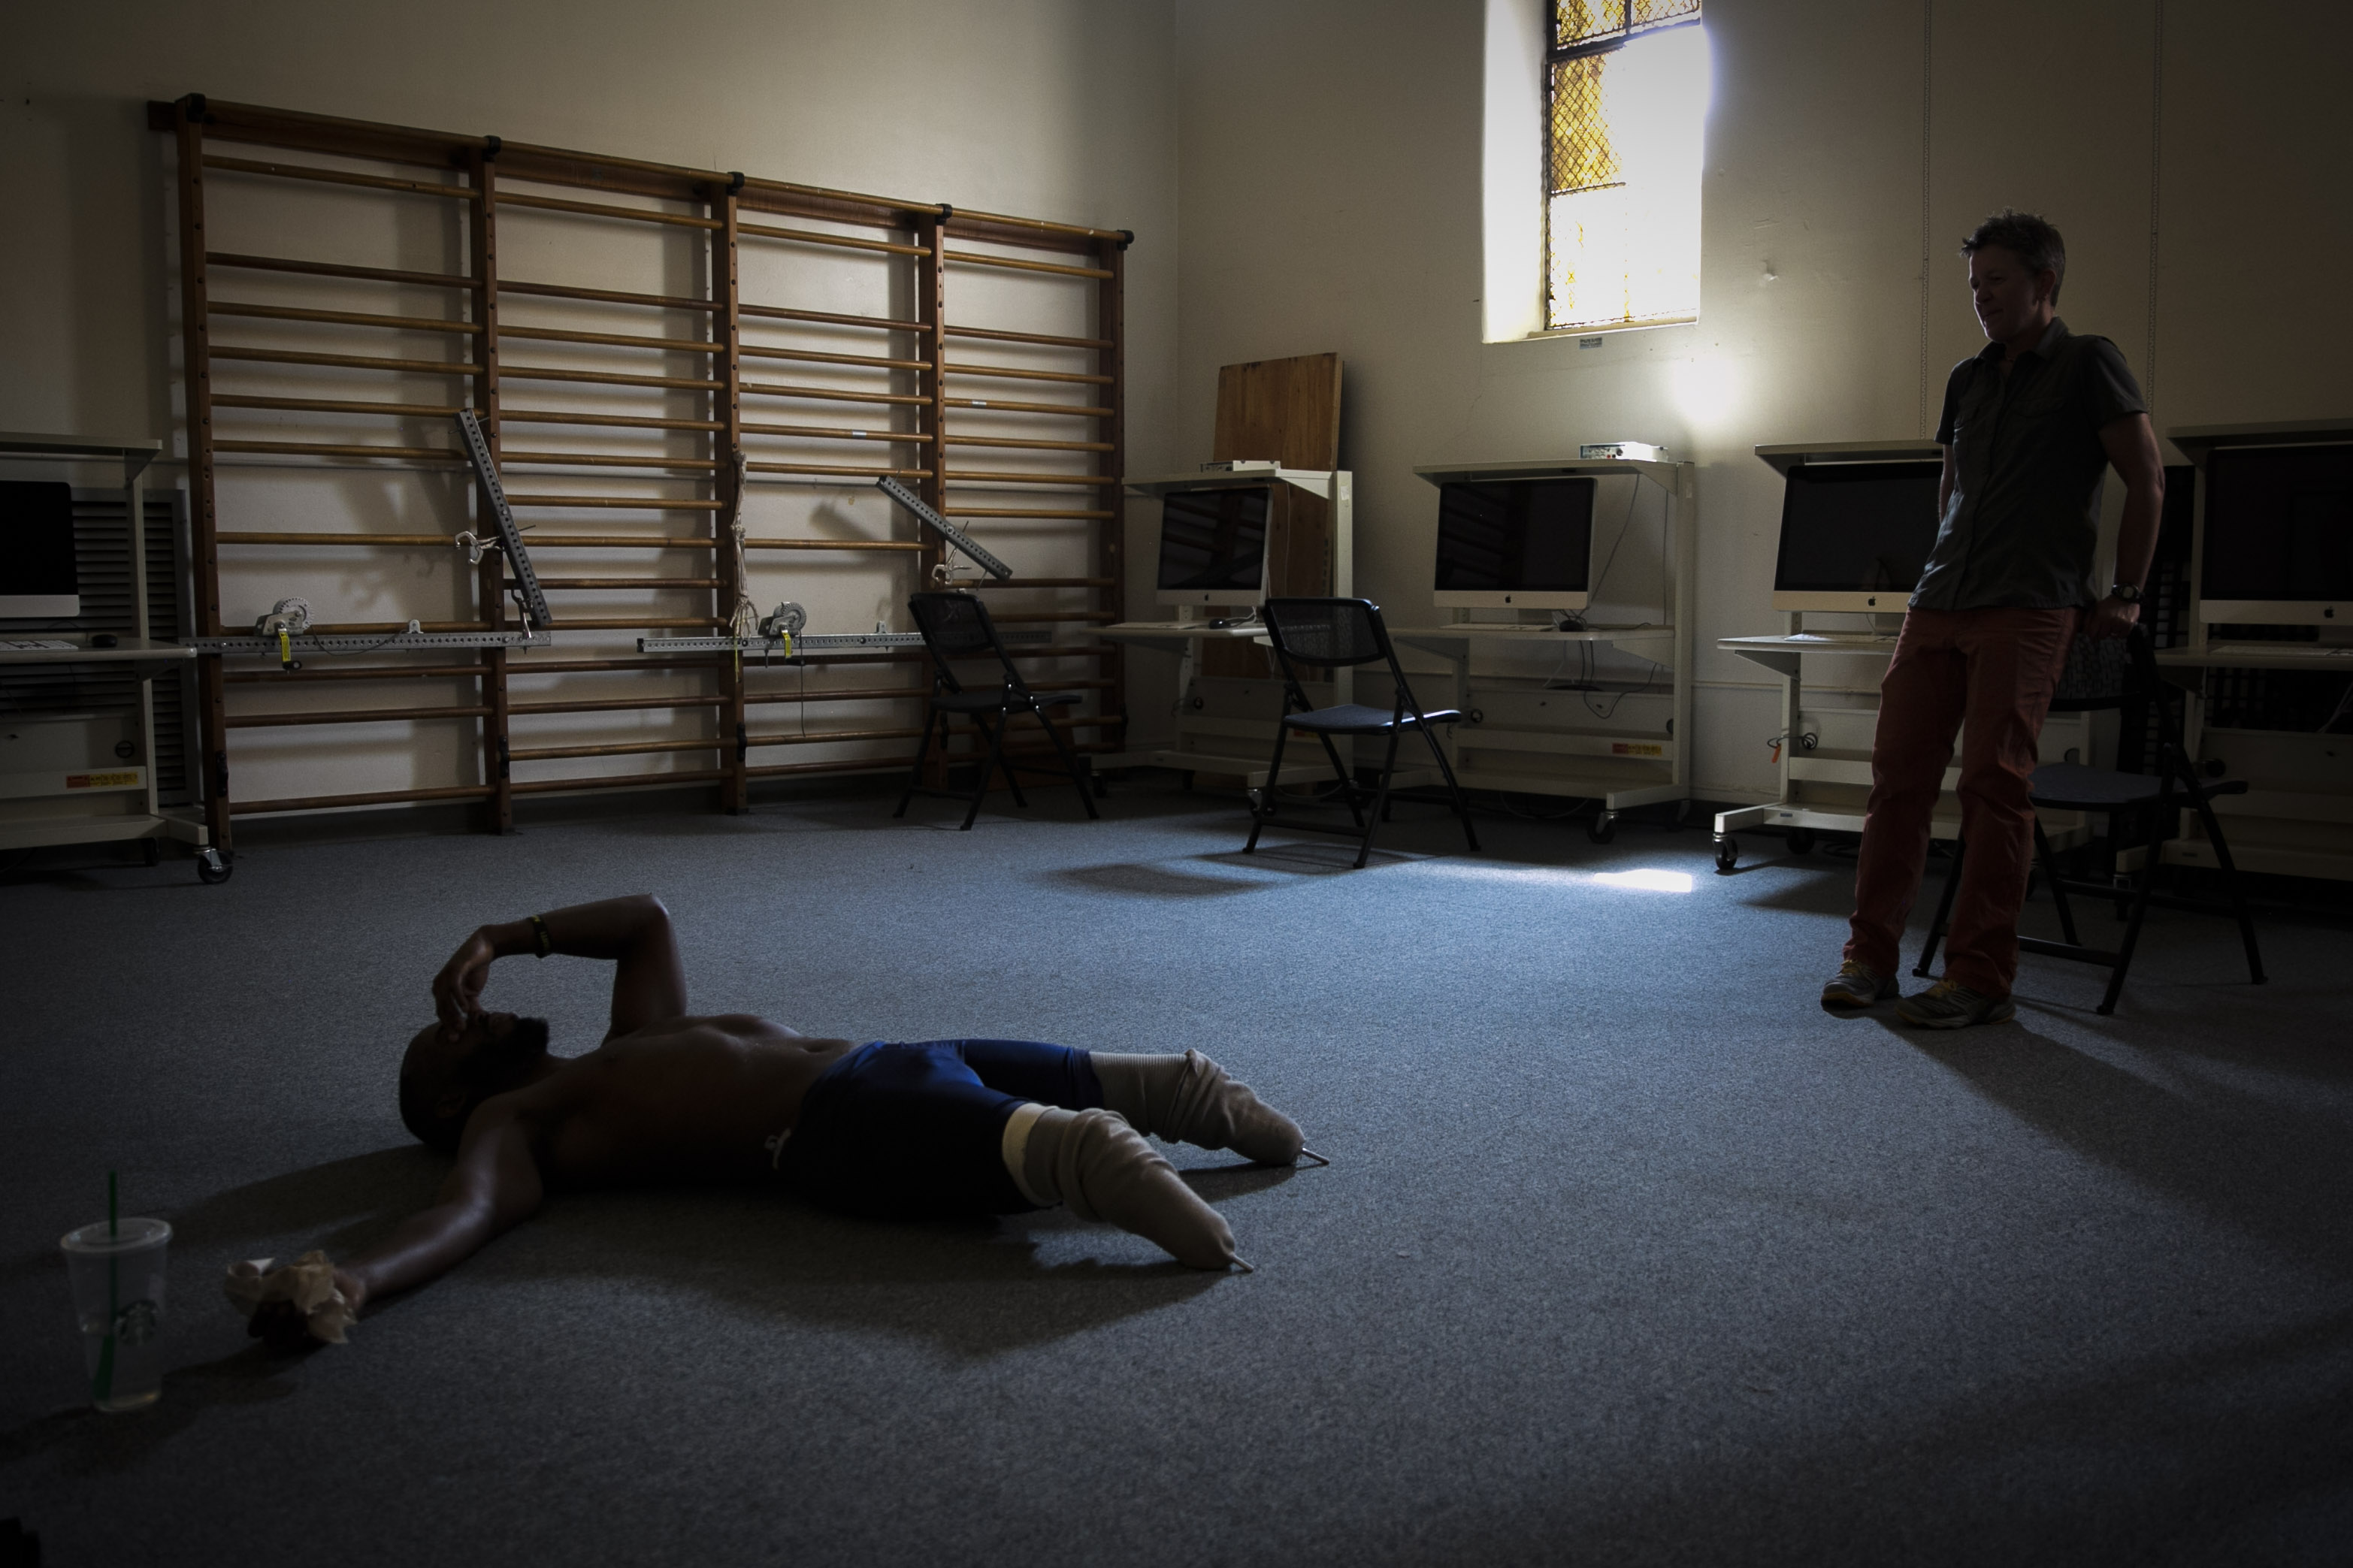 <p>Blake Leeper, left, recovers after running a sprint at the University of ColoradoApplied Biomechanics Laboratory Friday, August 24, 2018. At right is the lab's director,Alena Grabowski.</p>